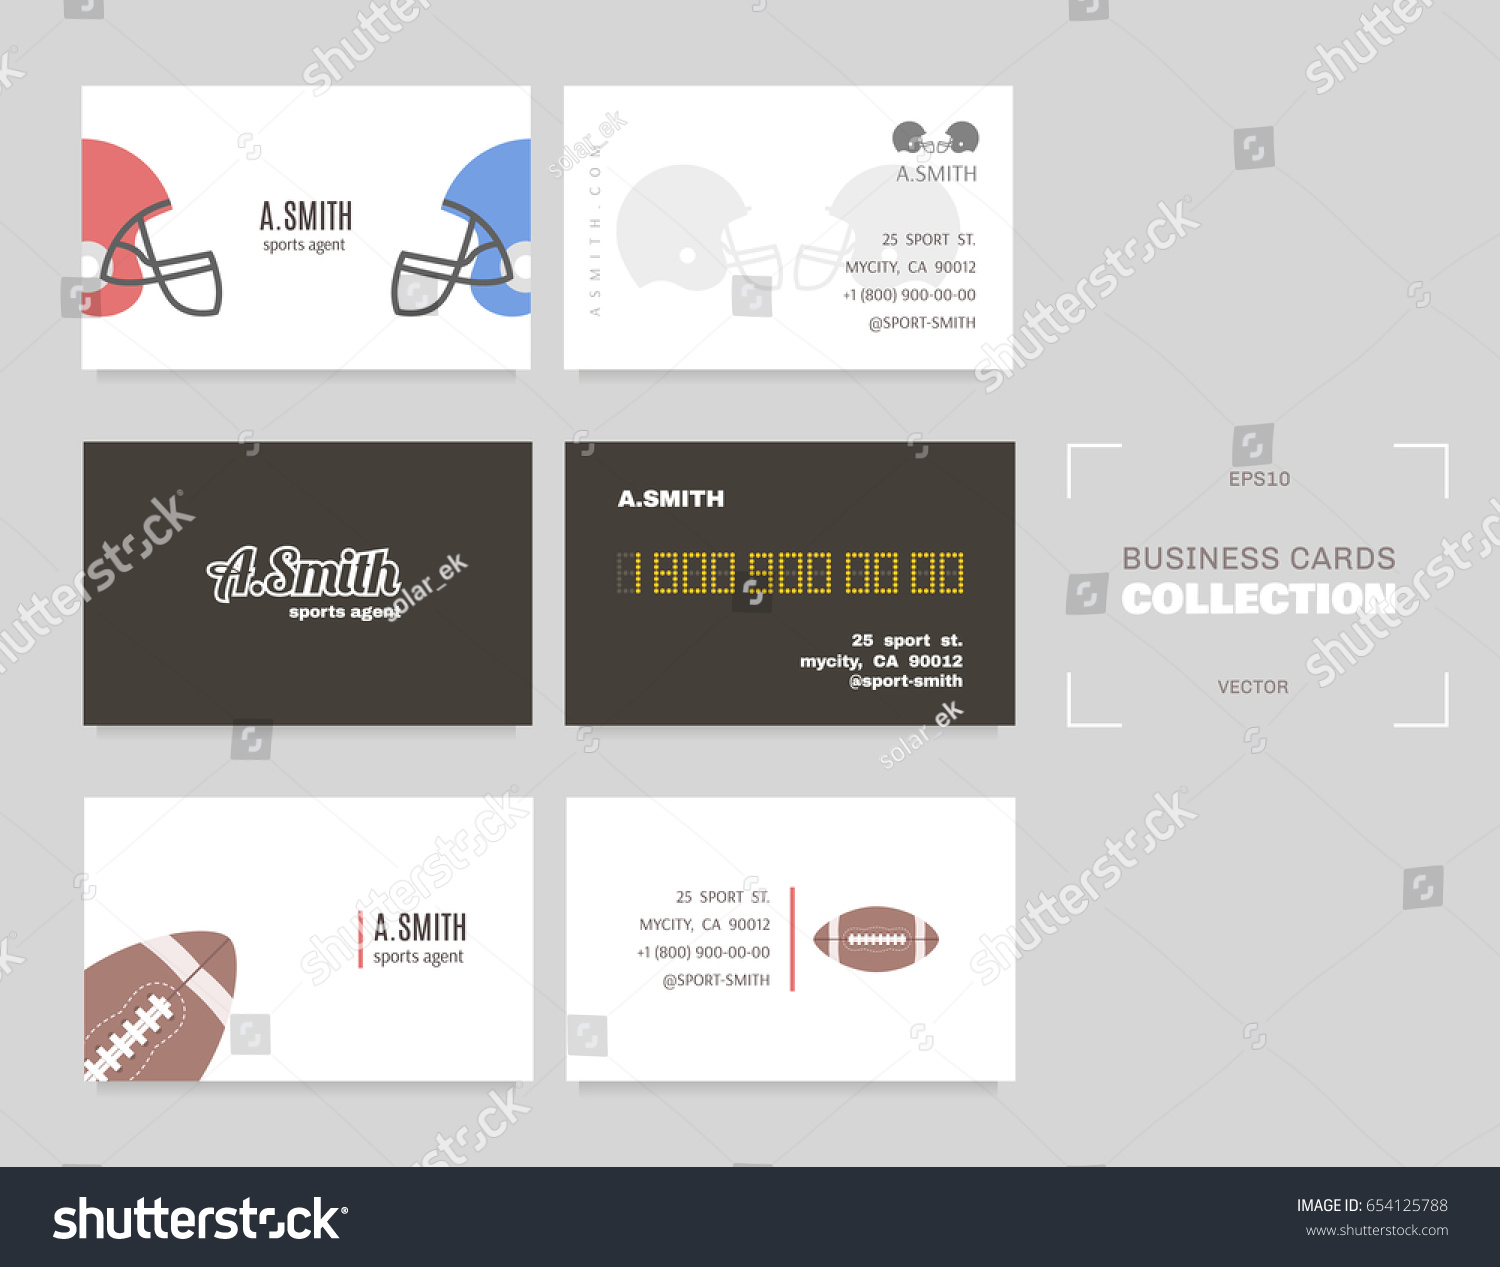 Sports agent business card image collections free business cards sports business cards choice image free business cards sports business cards good idea sports stock vector magicingreecefo Choice Image